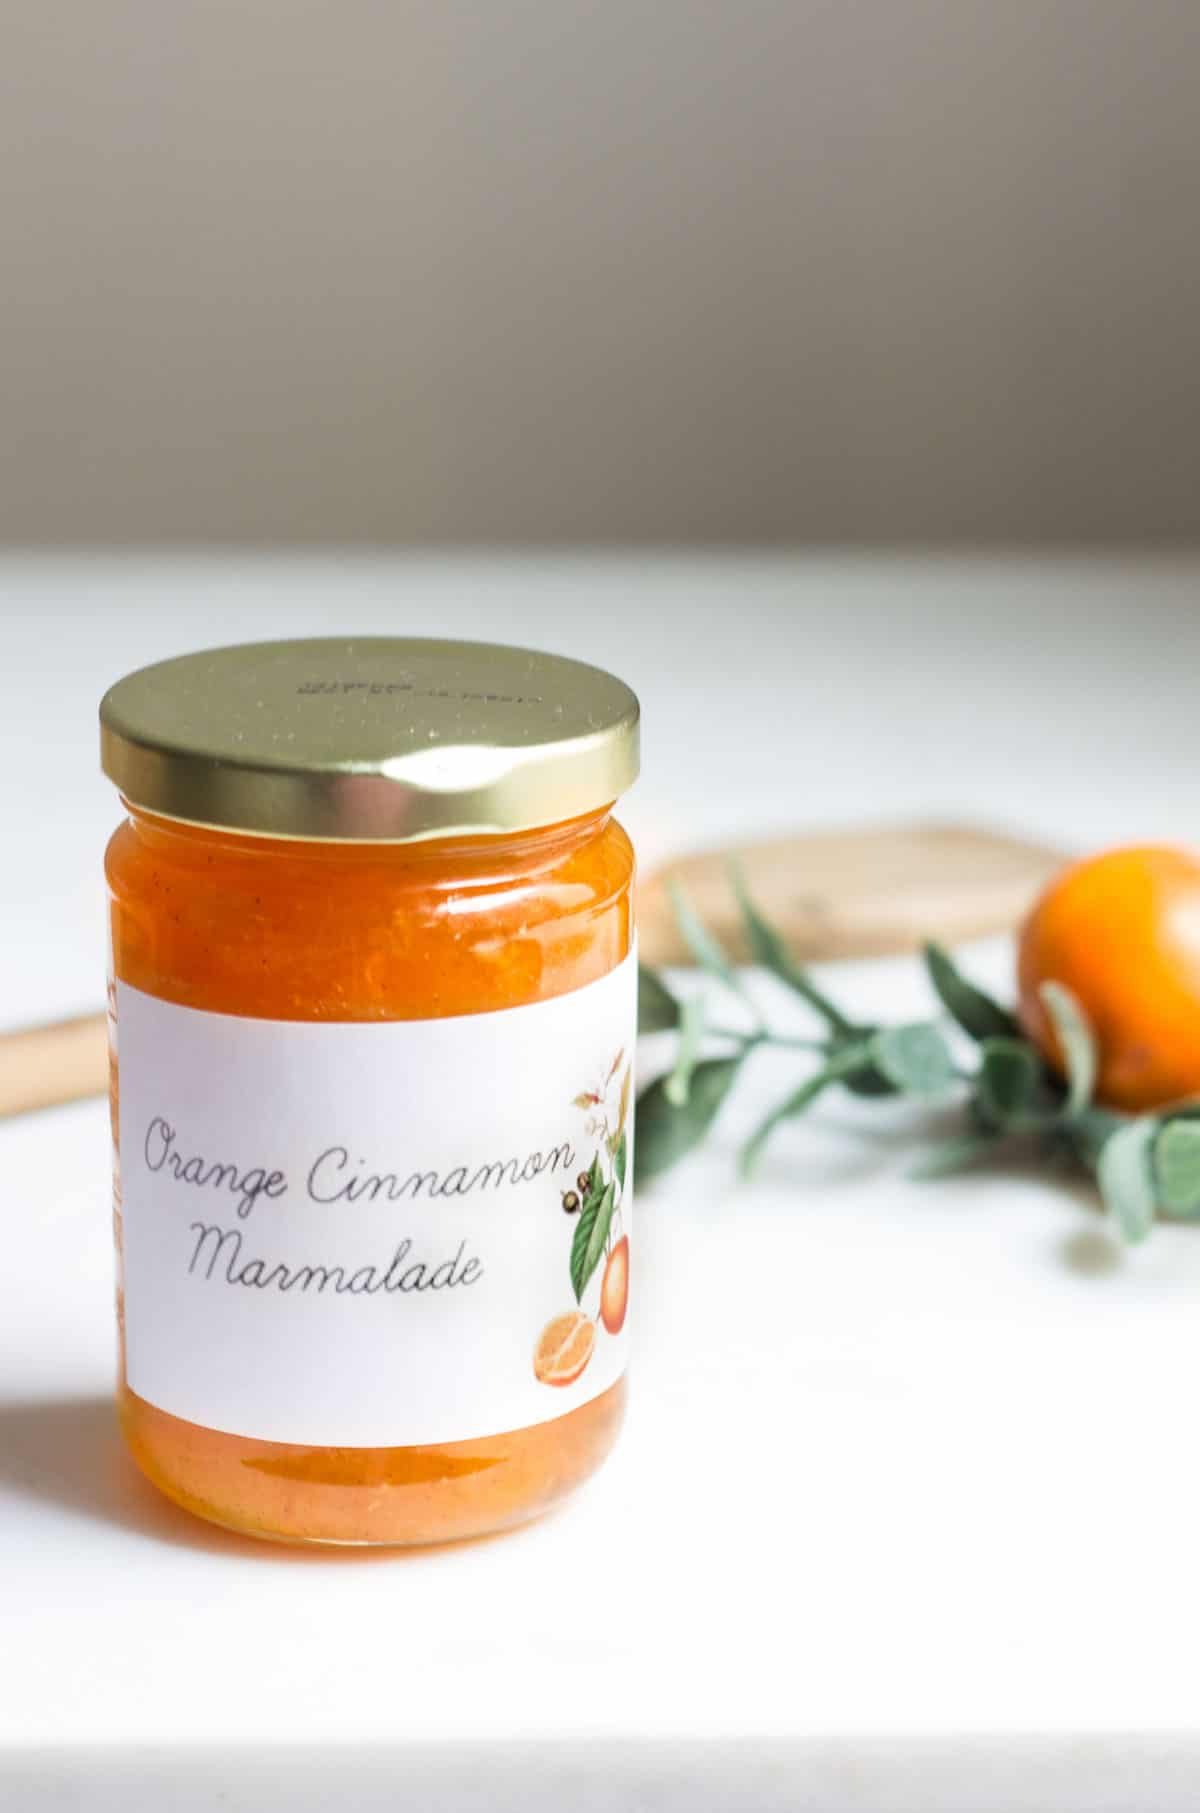 Orange Marmalade: A foolproof recipe to get perfectly sweet, bitter-free marmalade!